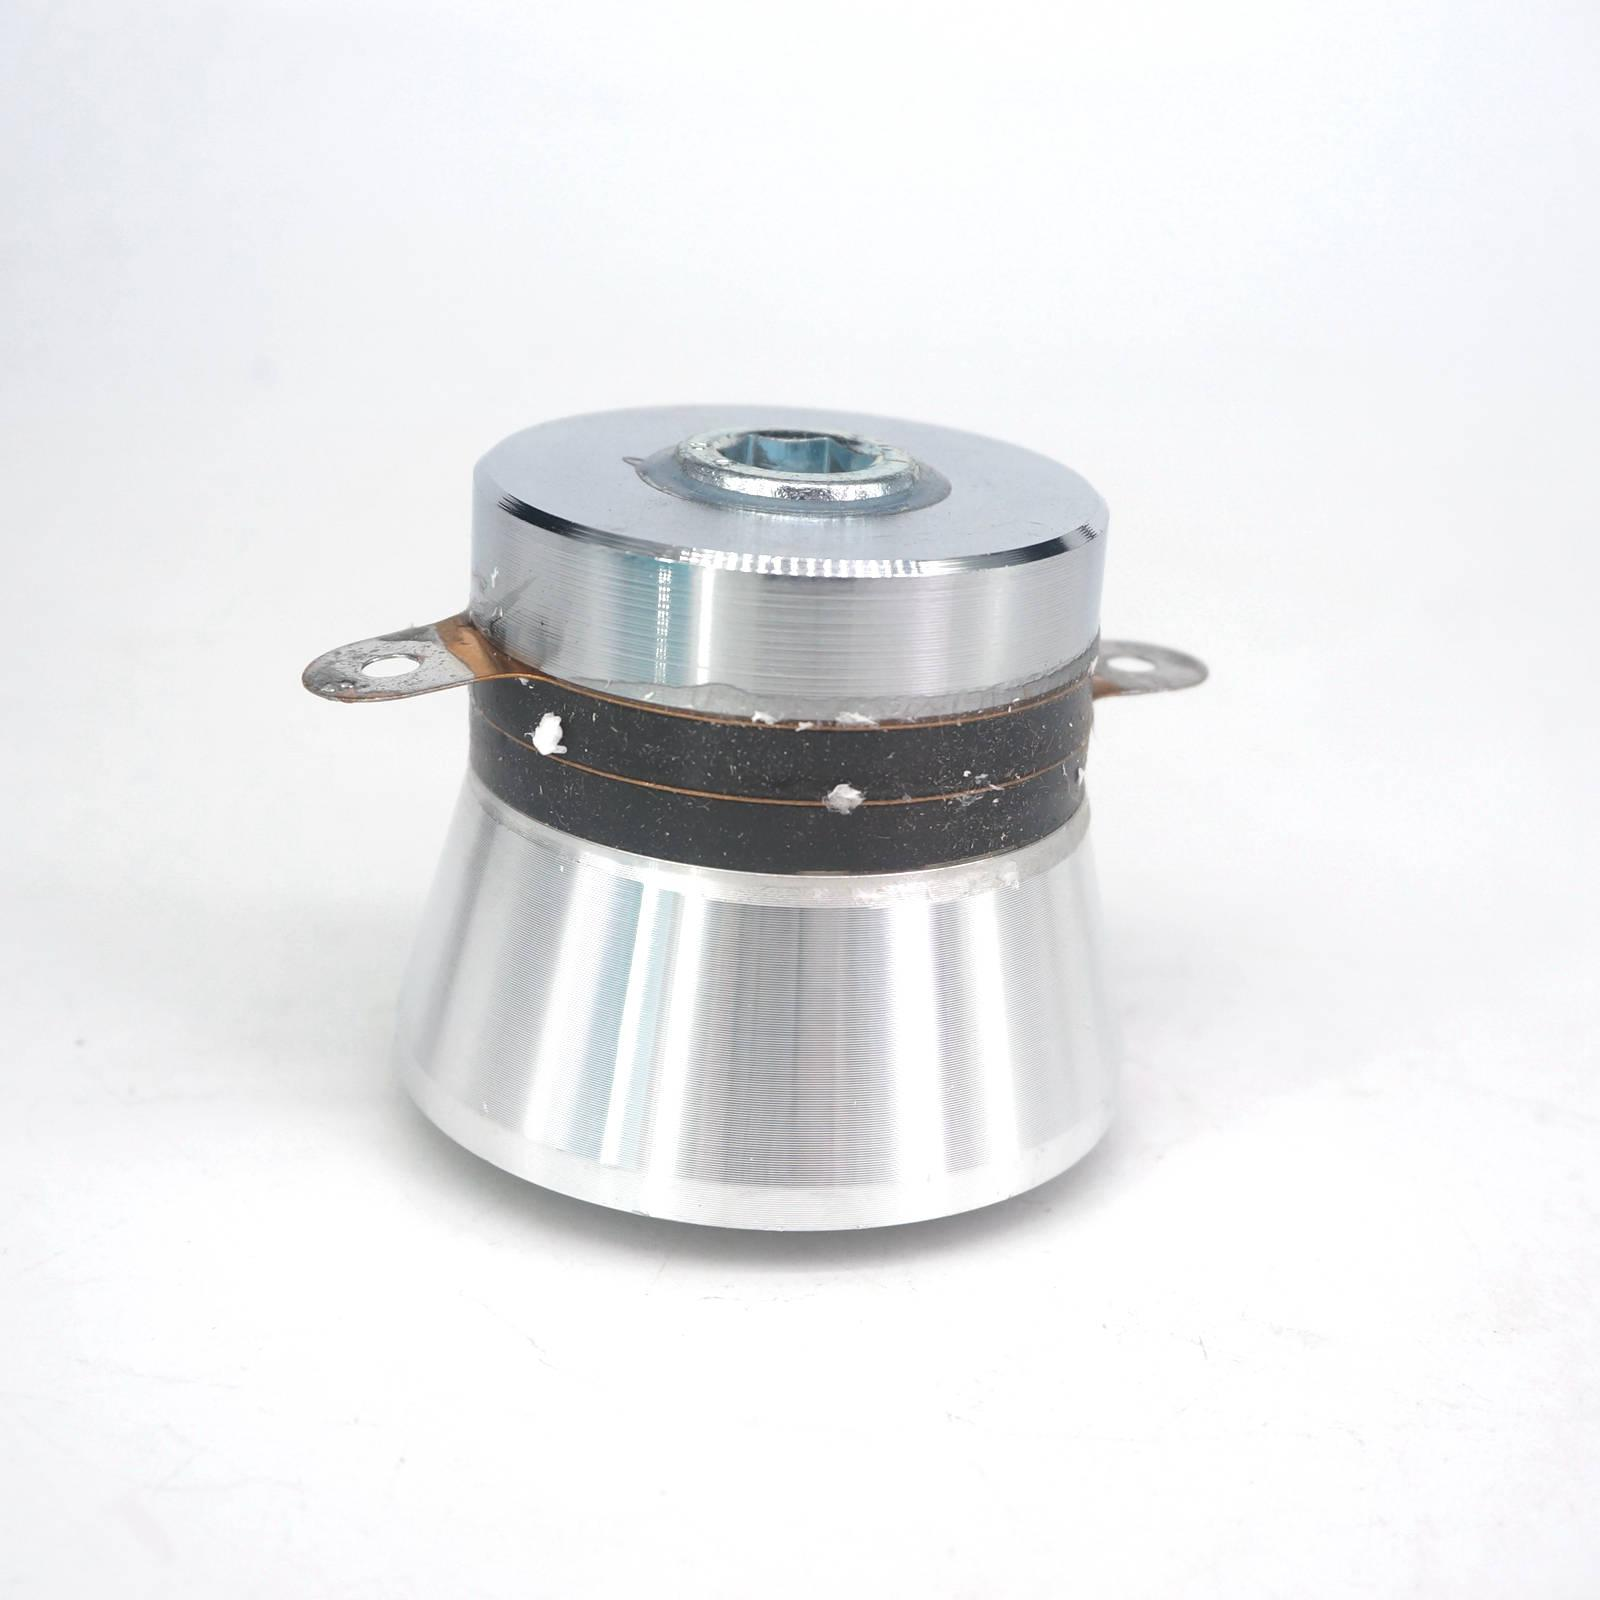 100W 40KHz Cleaning Ultrasound Transducer Ultrasonic Piezoelectric Transducer Cleaner